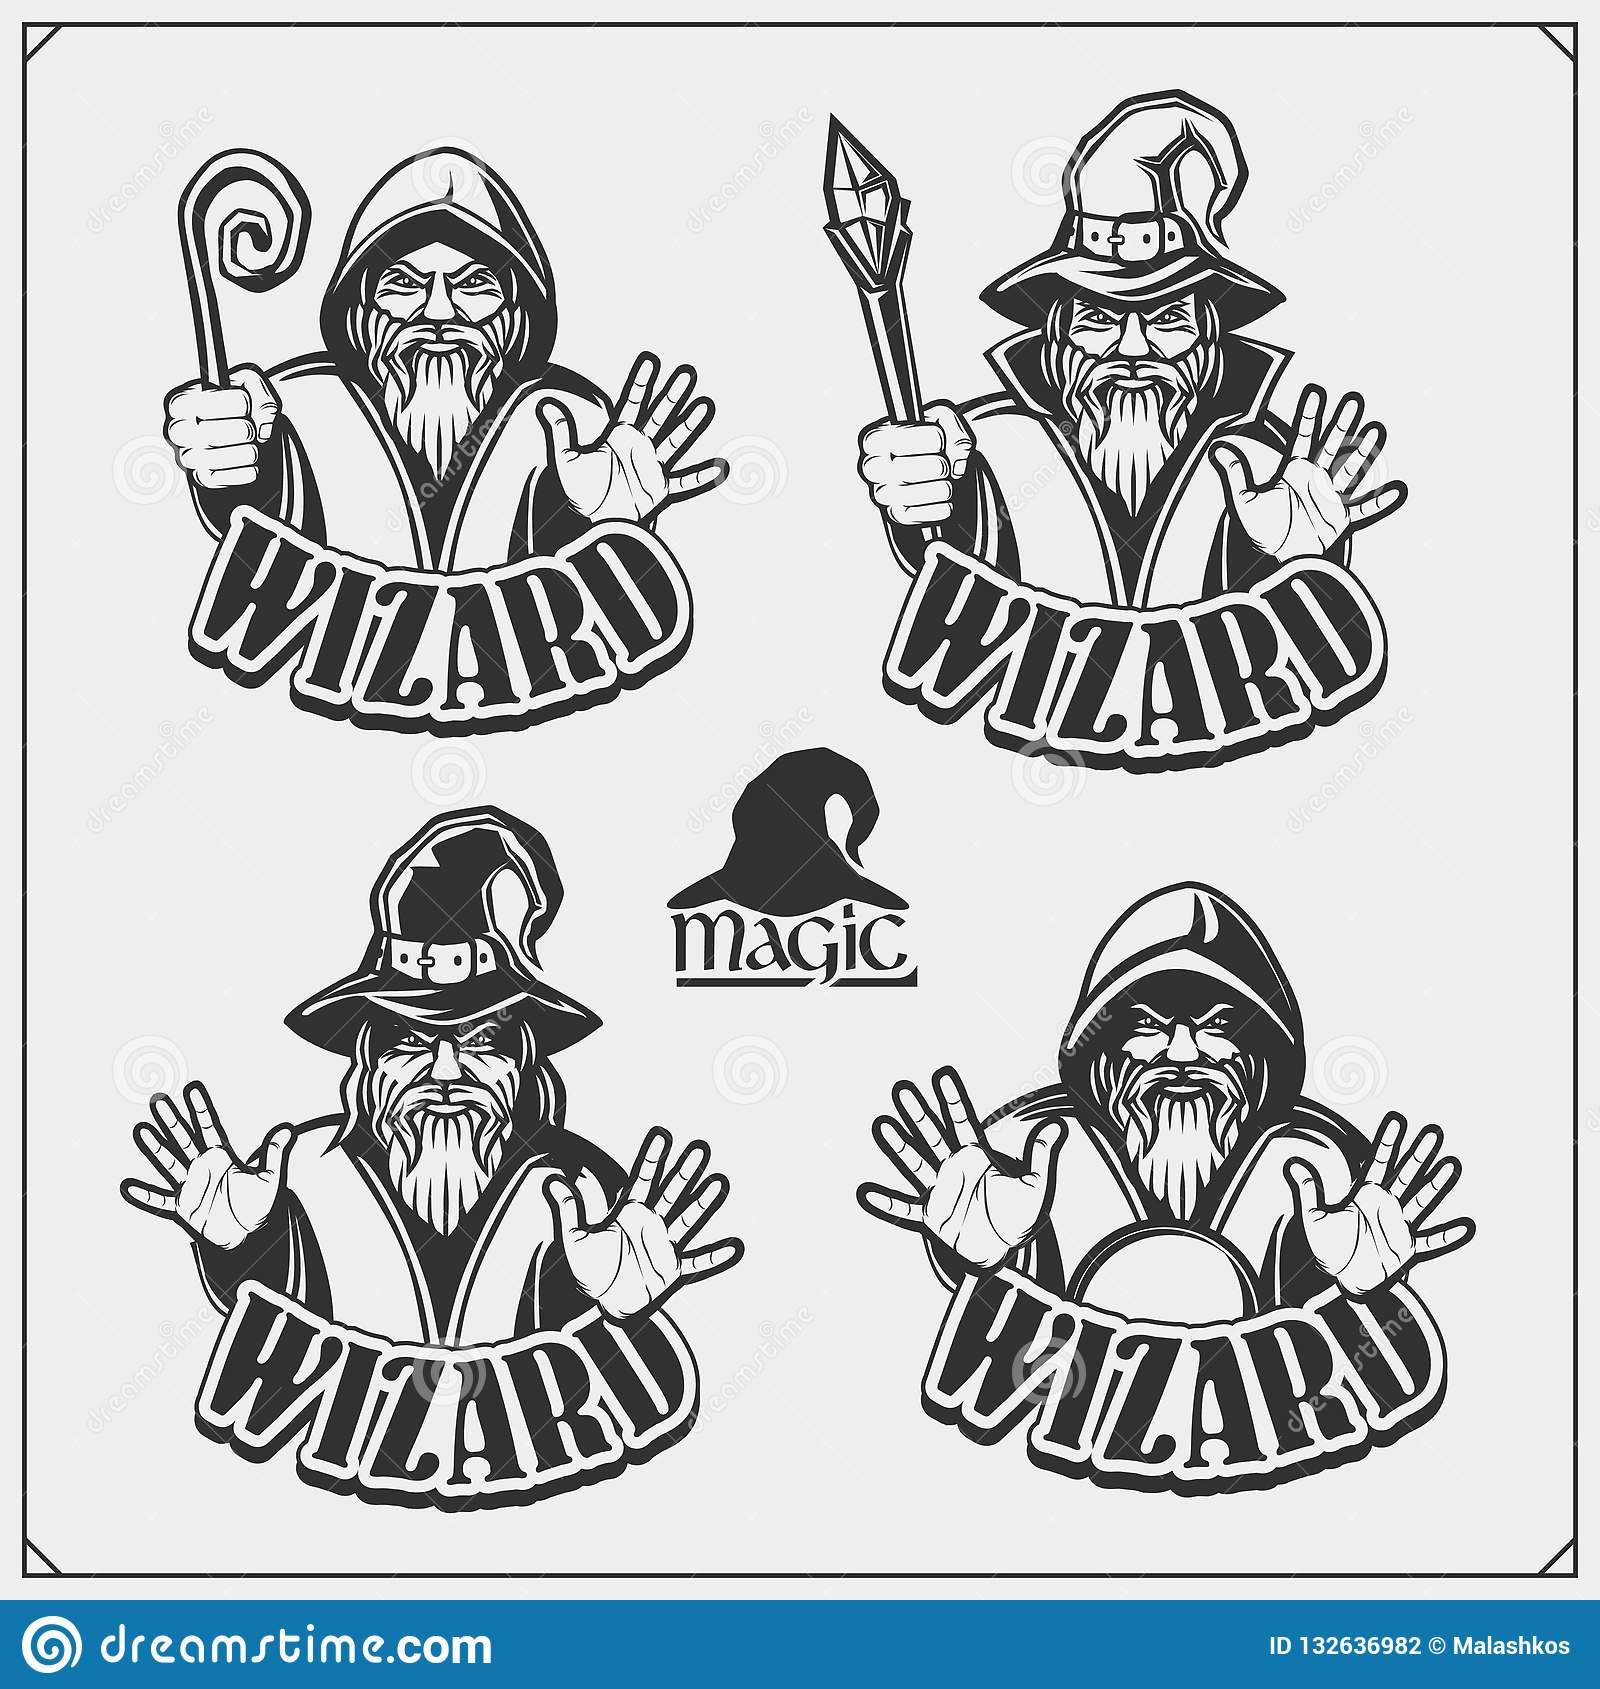 Set of wizard or magician emblems, labels and design elements.  Illustrations of sorcerer with